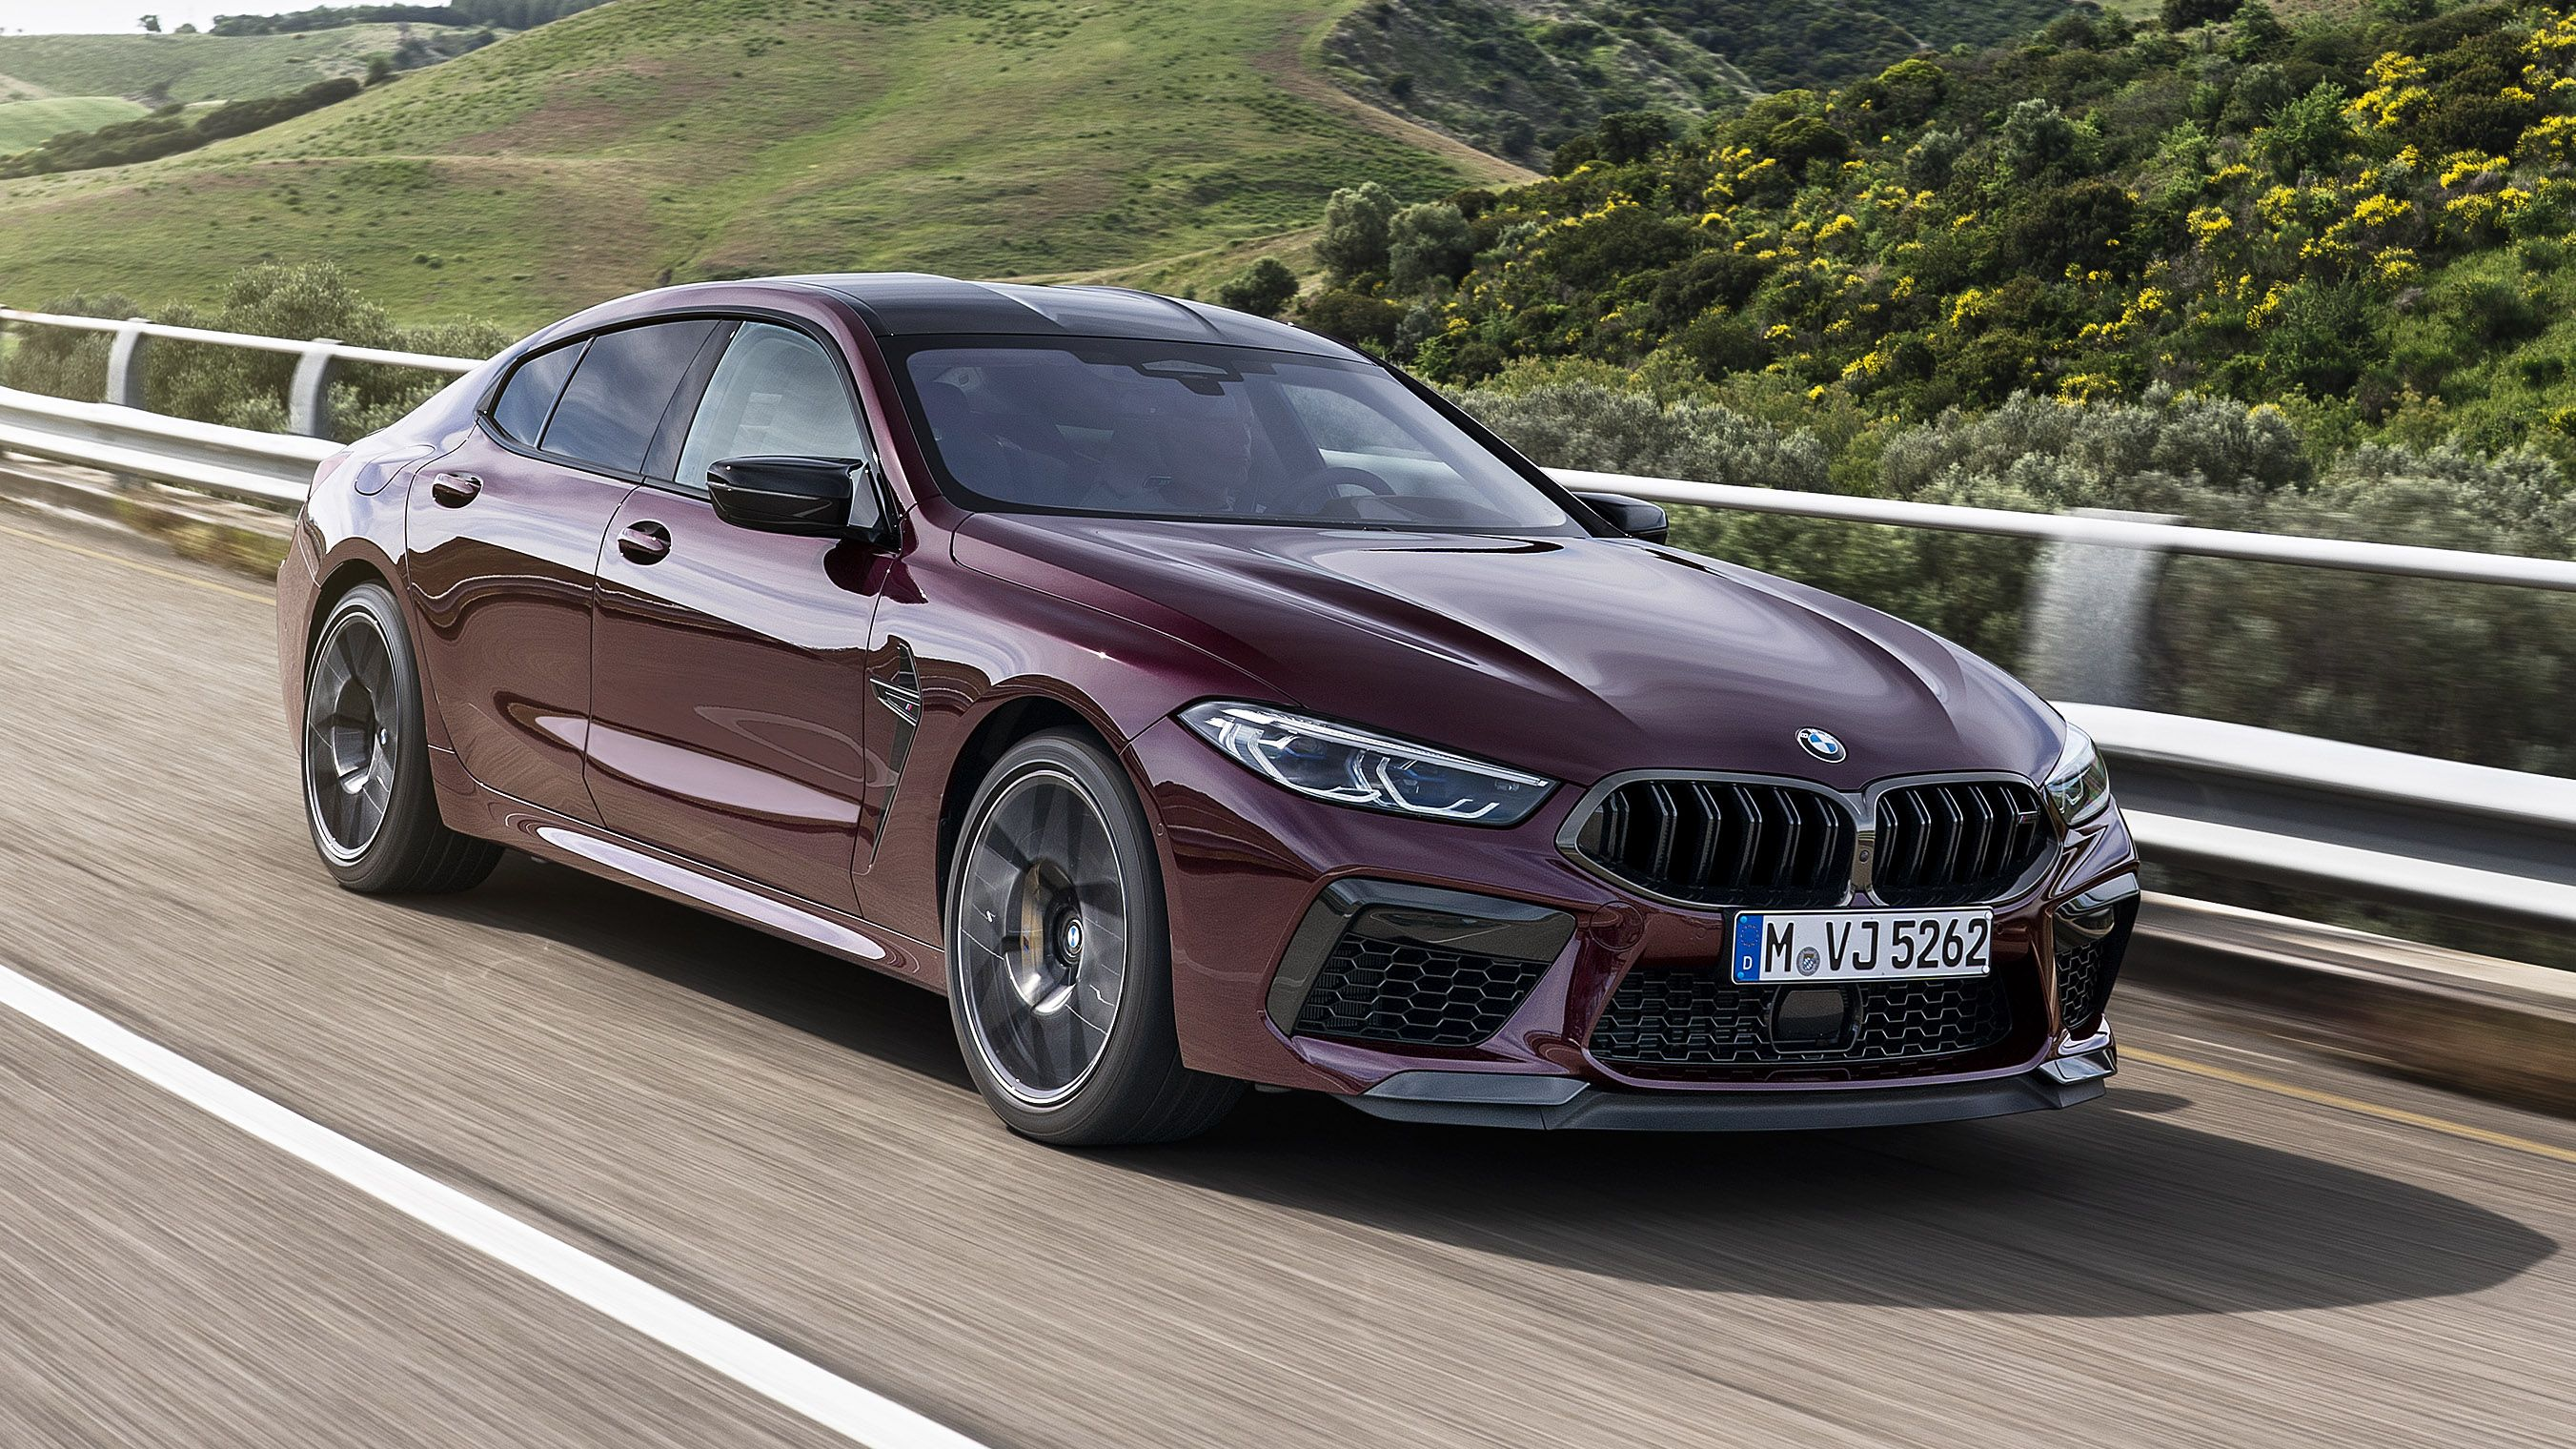 2020 Bmw M8 Gran Coupe Revealed With Competition And First Edition